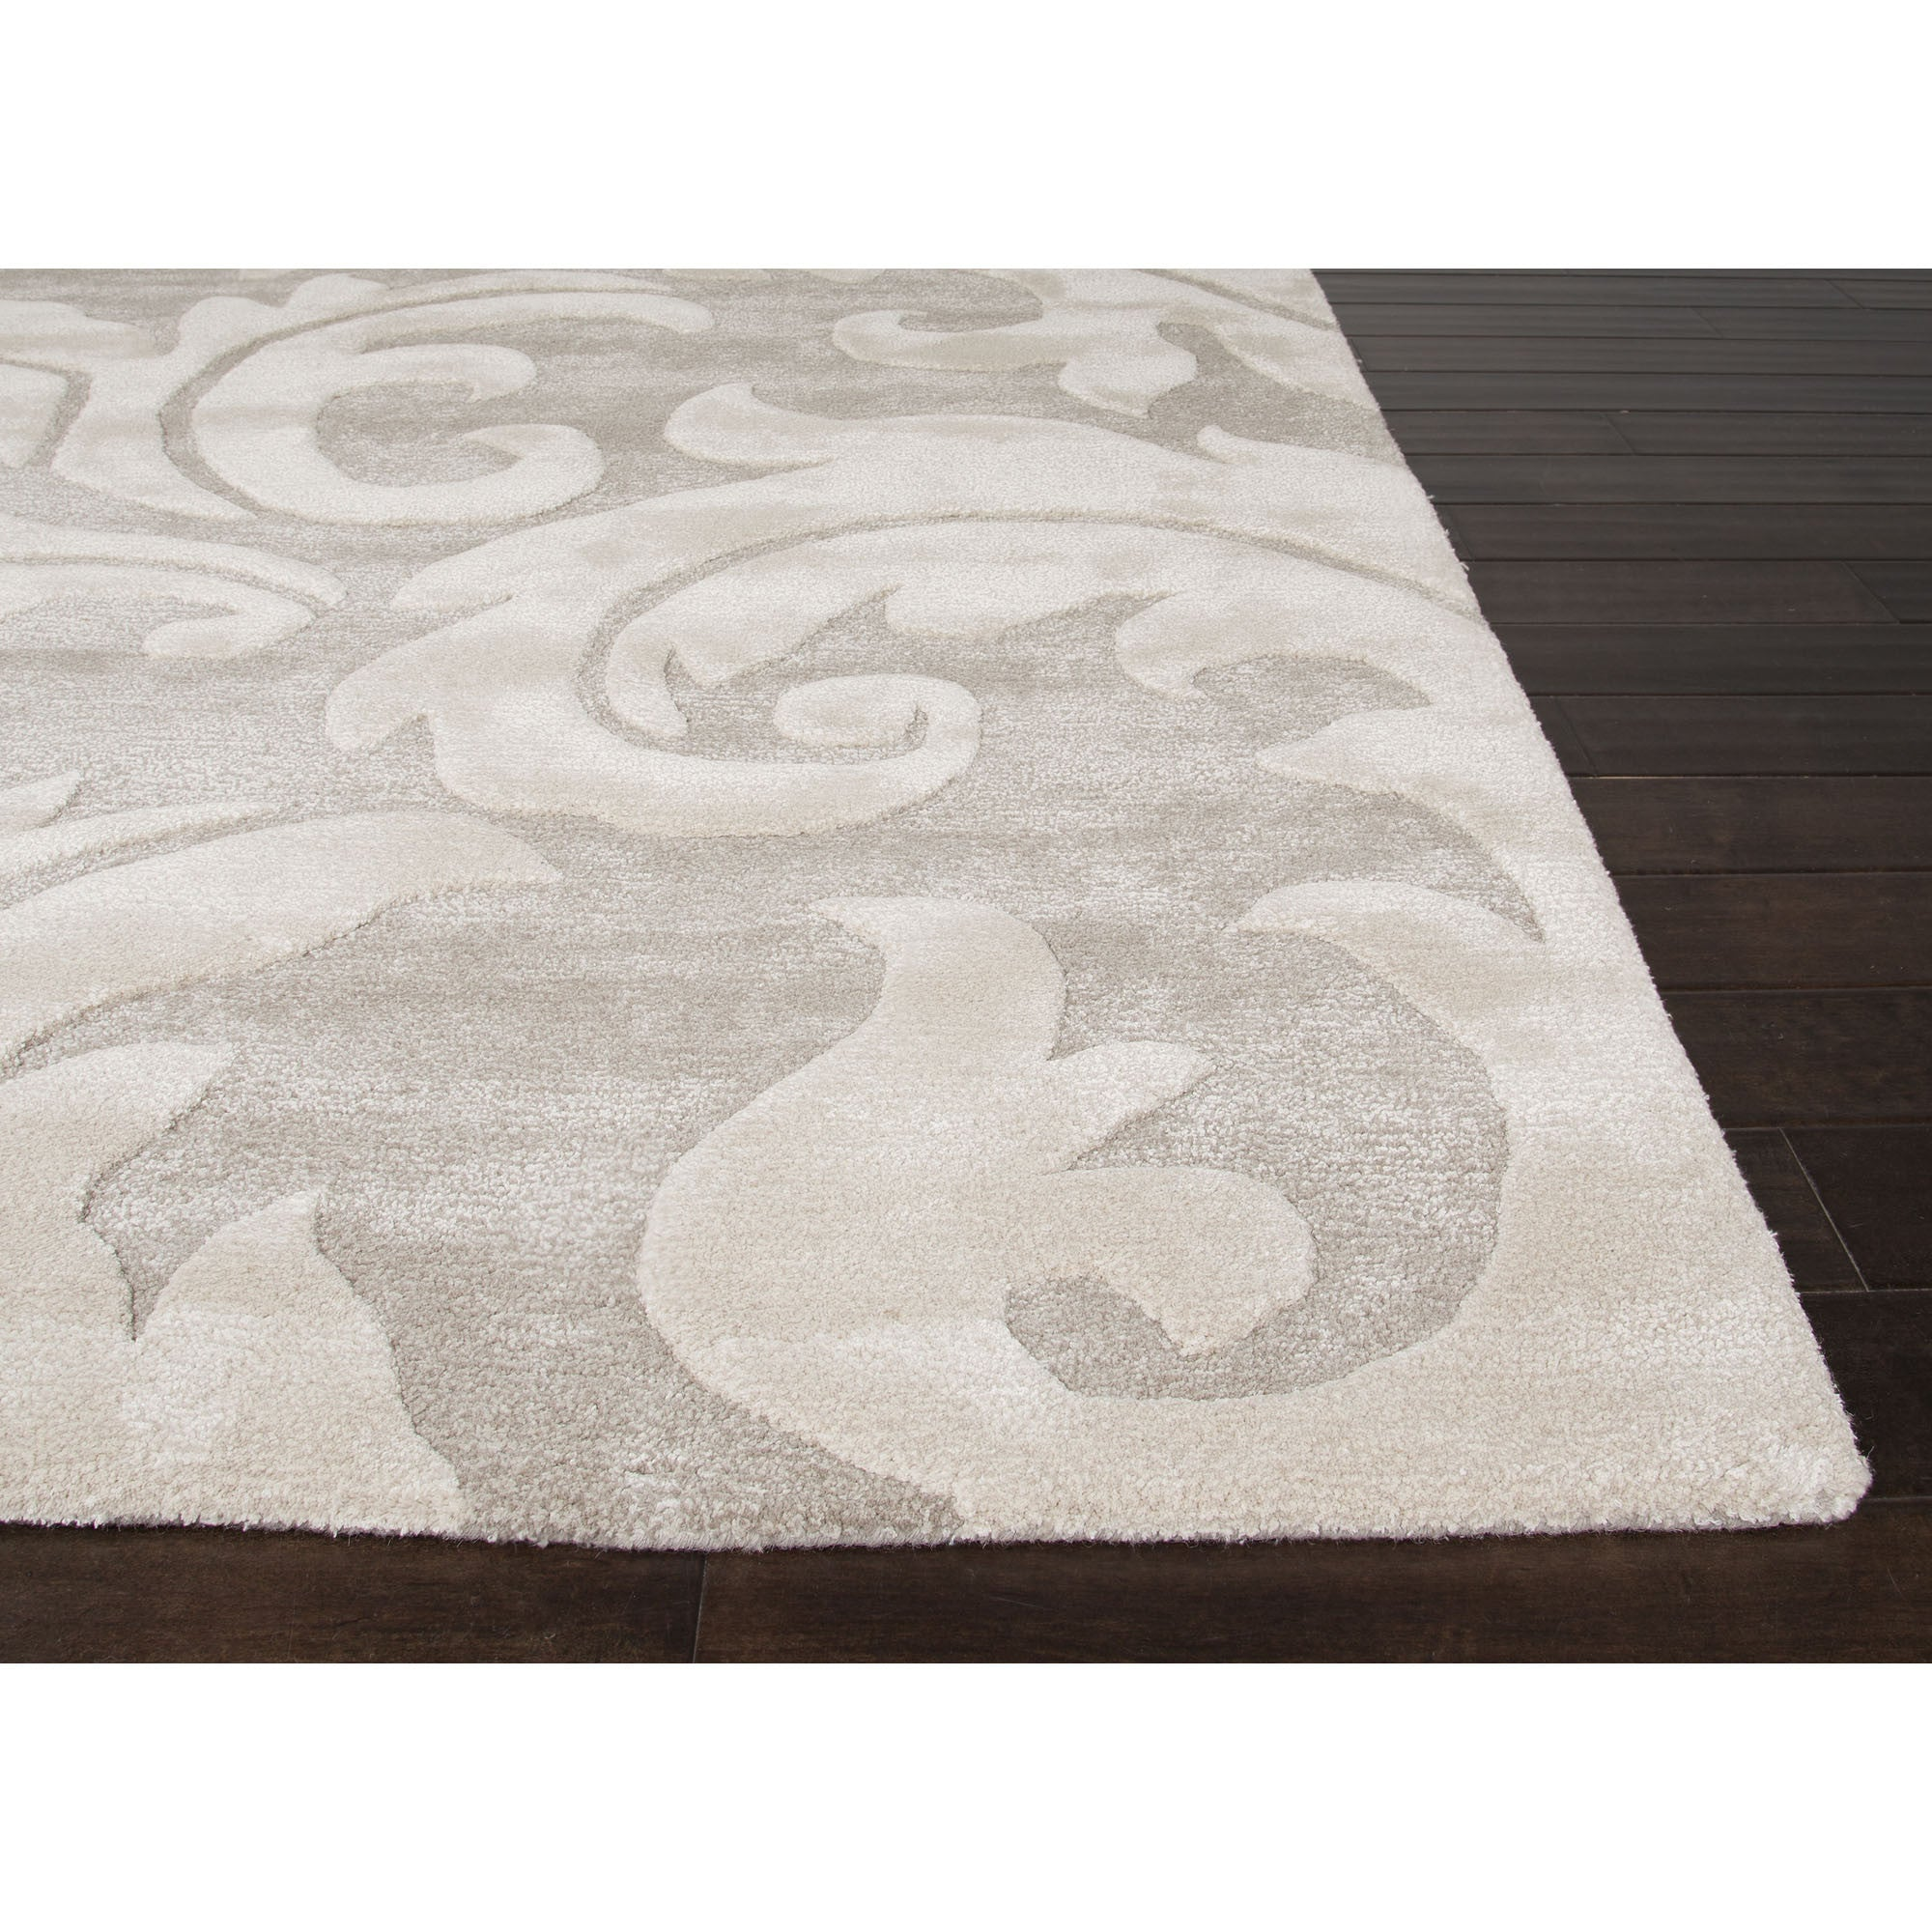 Jaipur Rugs Transitional Floral Pattern Gray Ivory Wool